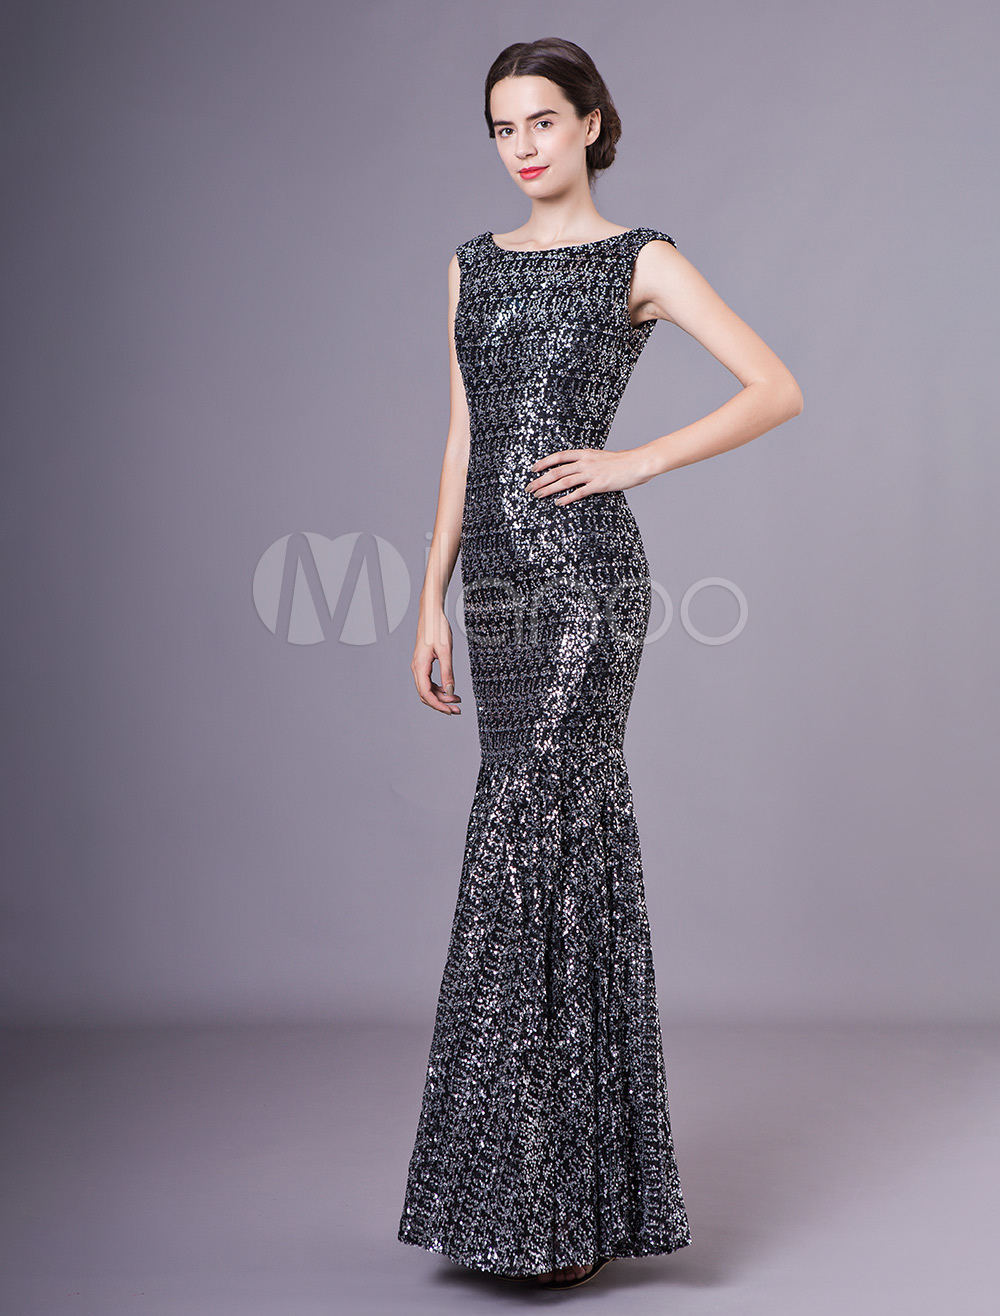 4ddd537b3a6 Black Sequin Cocktail Gowns